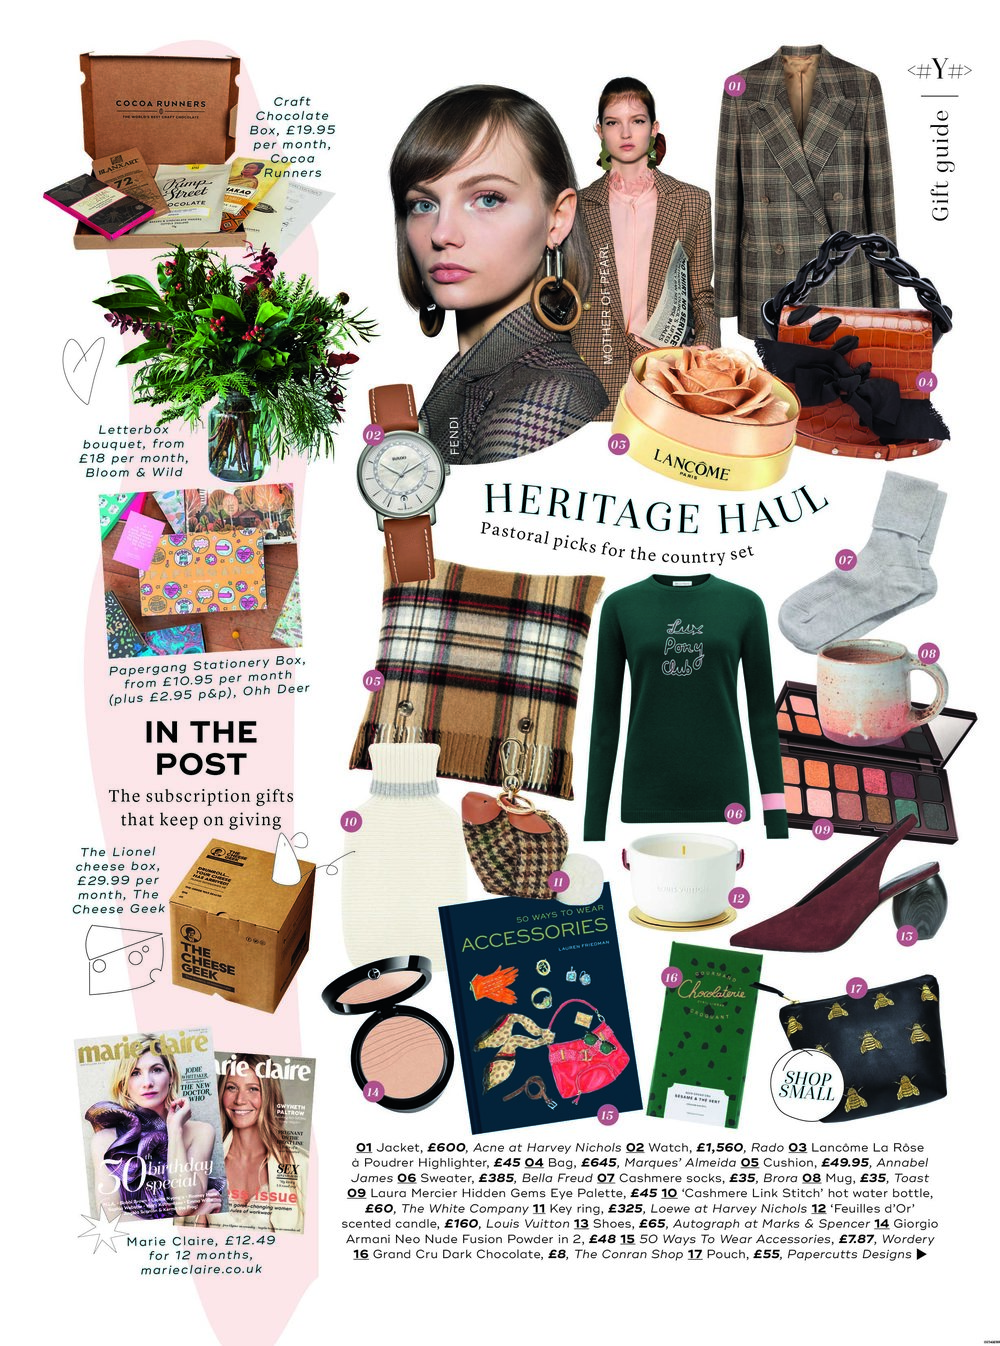 Marie Claire Christmas Gift Guide - Featuring the 'Queen Bee' Leather make up bag from the pick of the UK's most creative small businesses.